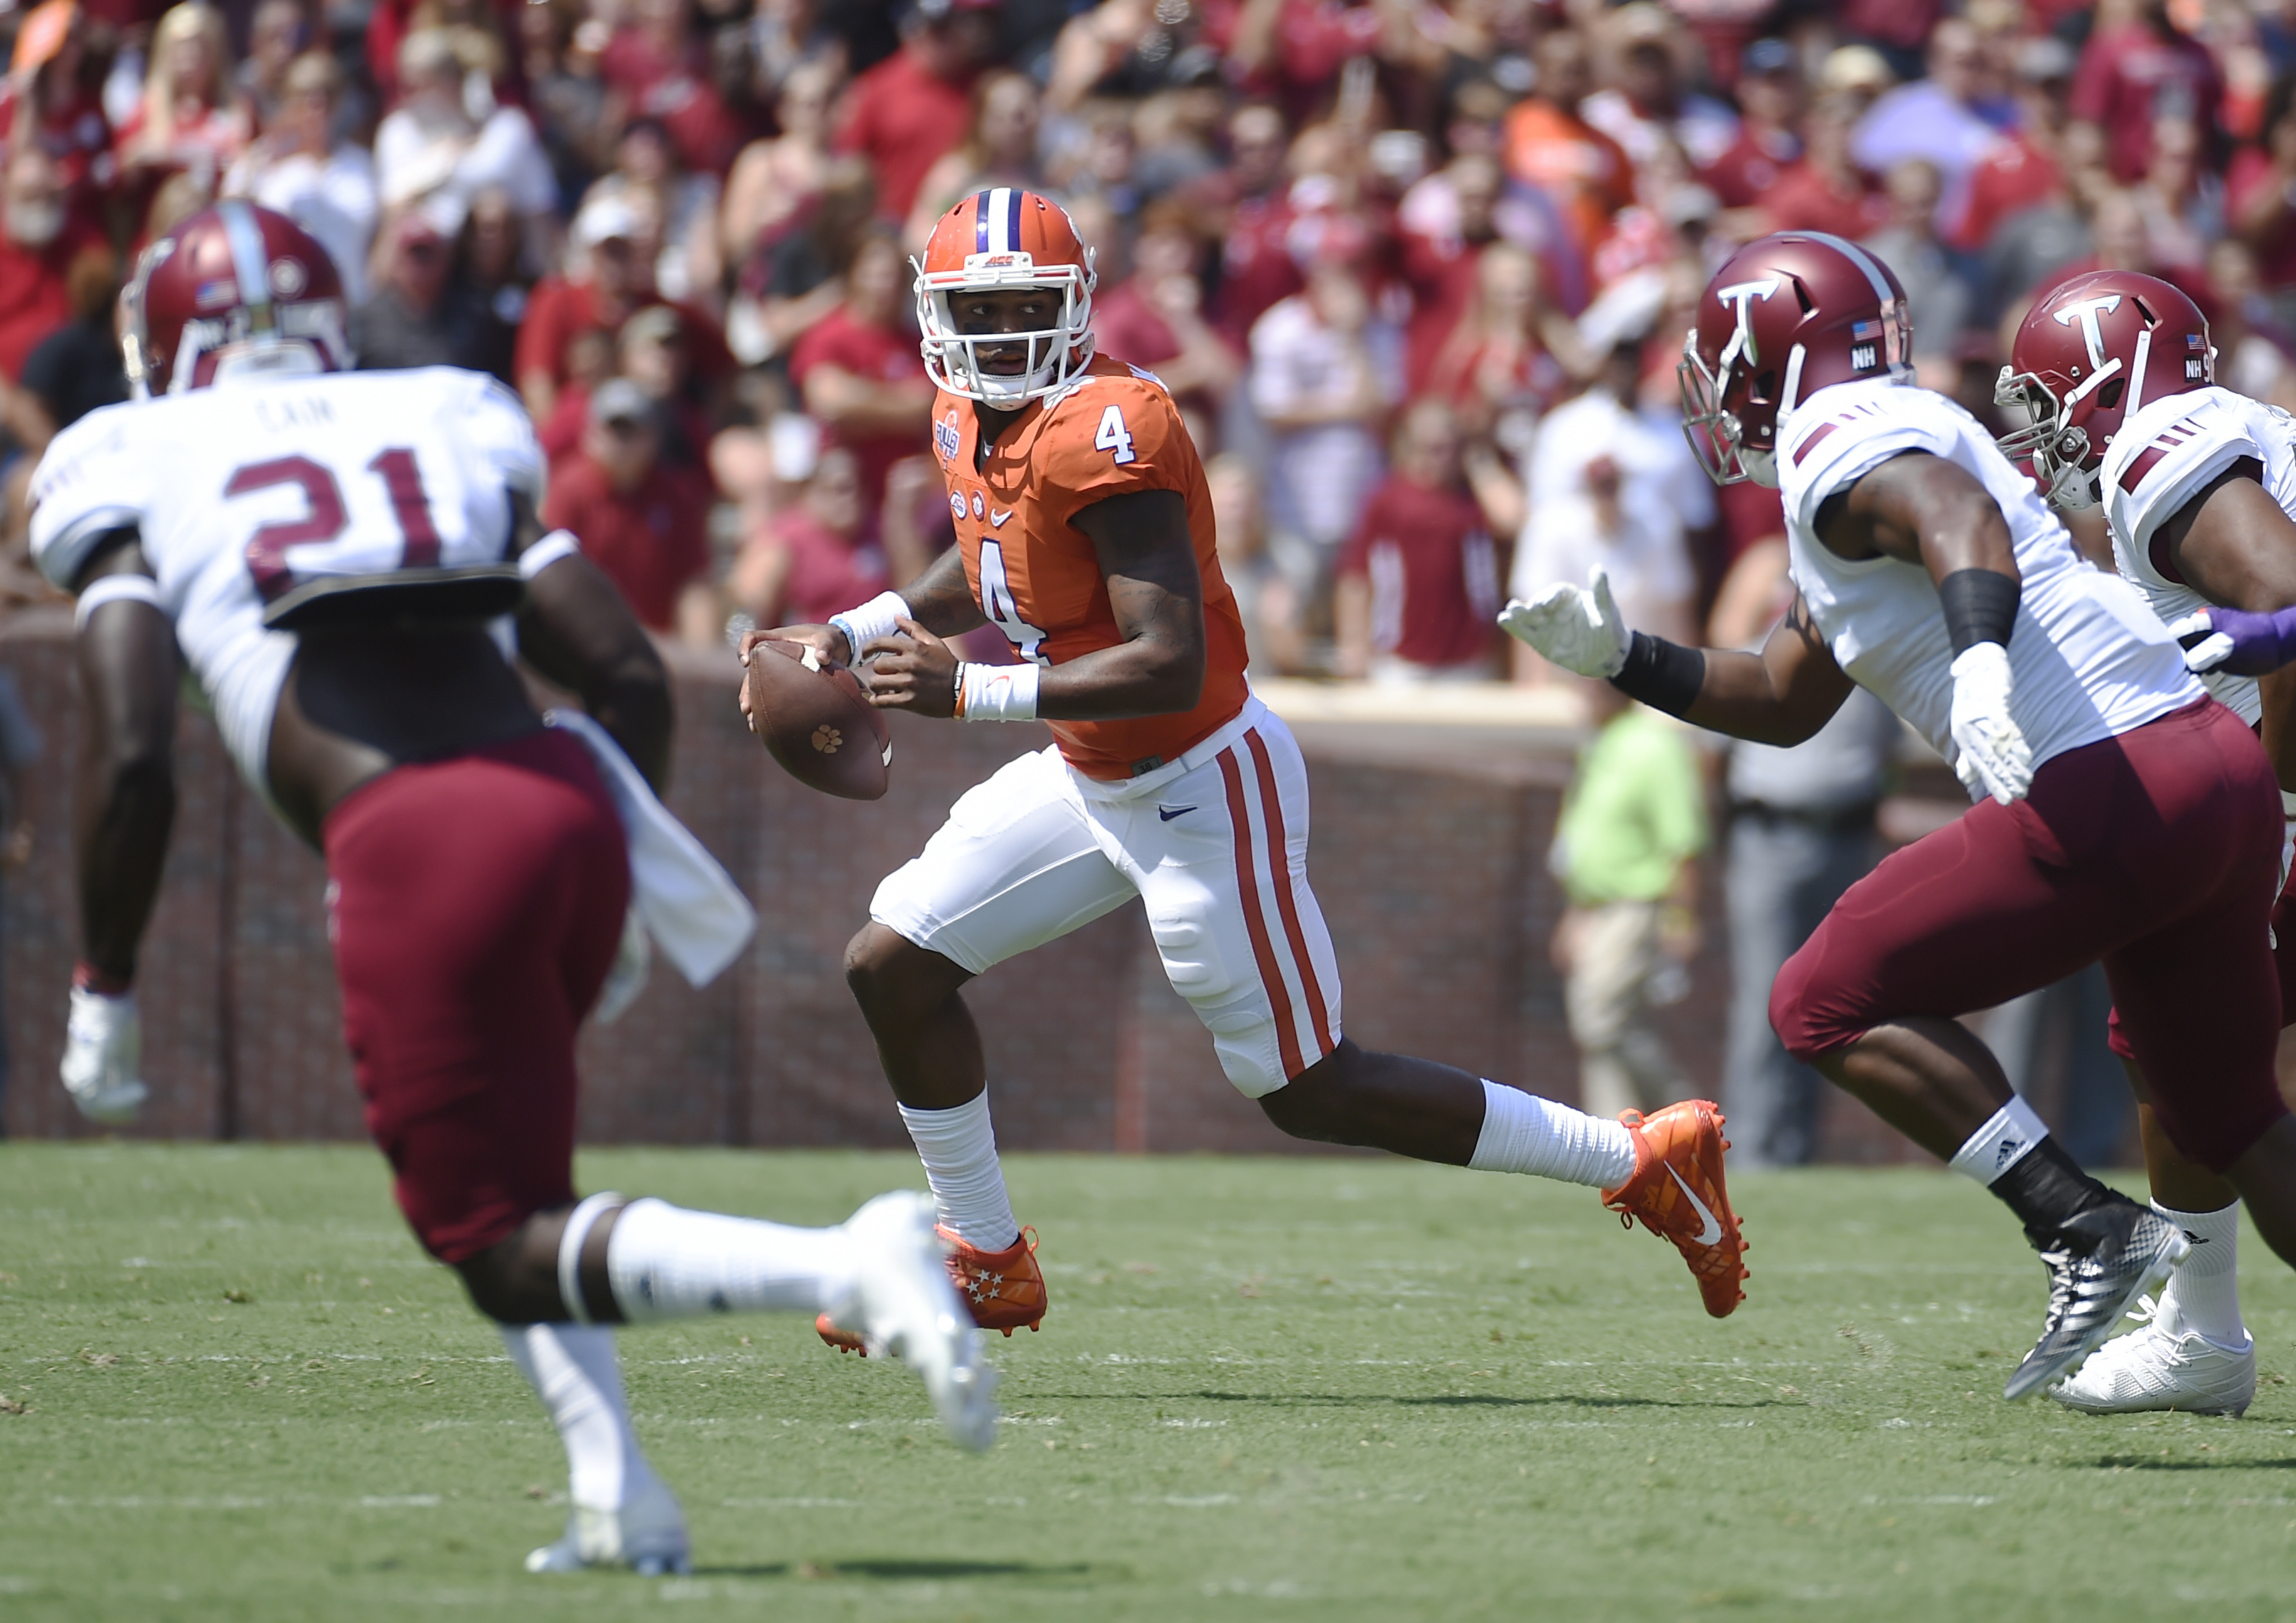 Clemson quarterback Deshaun Watson (4) scrambles as Troy players chase during the first half on an NCAA college football game on Saturday, Sept. 10, 2016, in Clemson, S.C. (AP Photo/Rainier Ehrhardt)